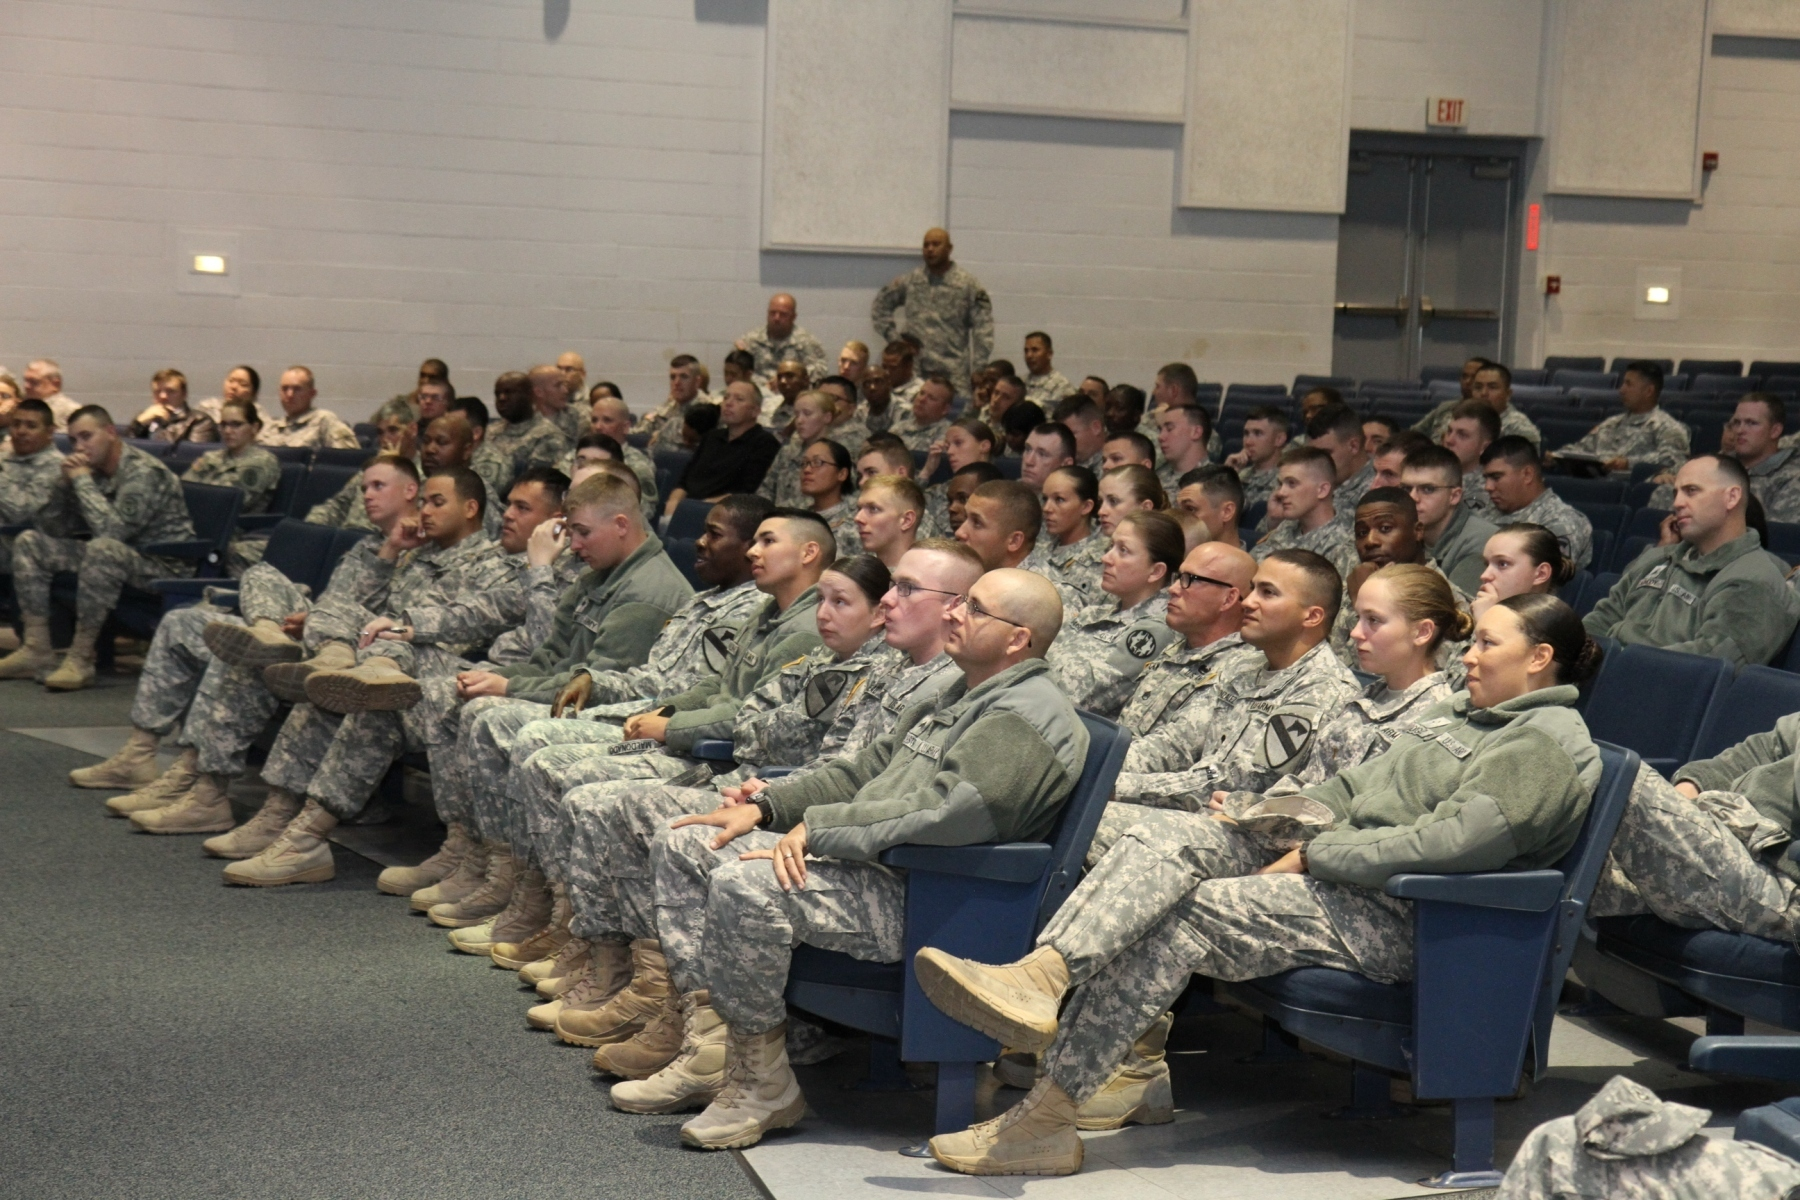 Sexual harassment training in the army